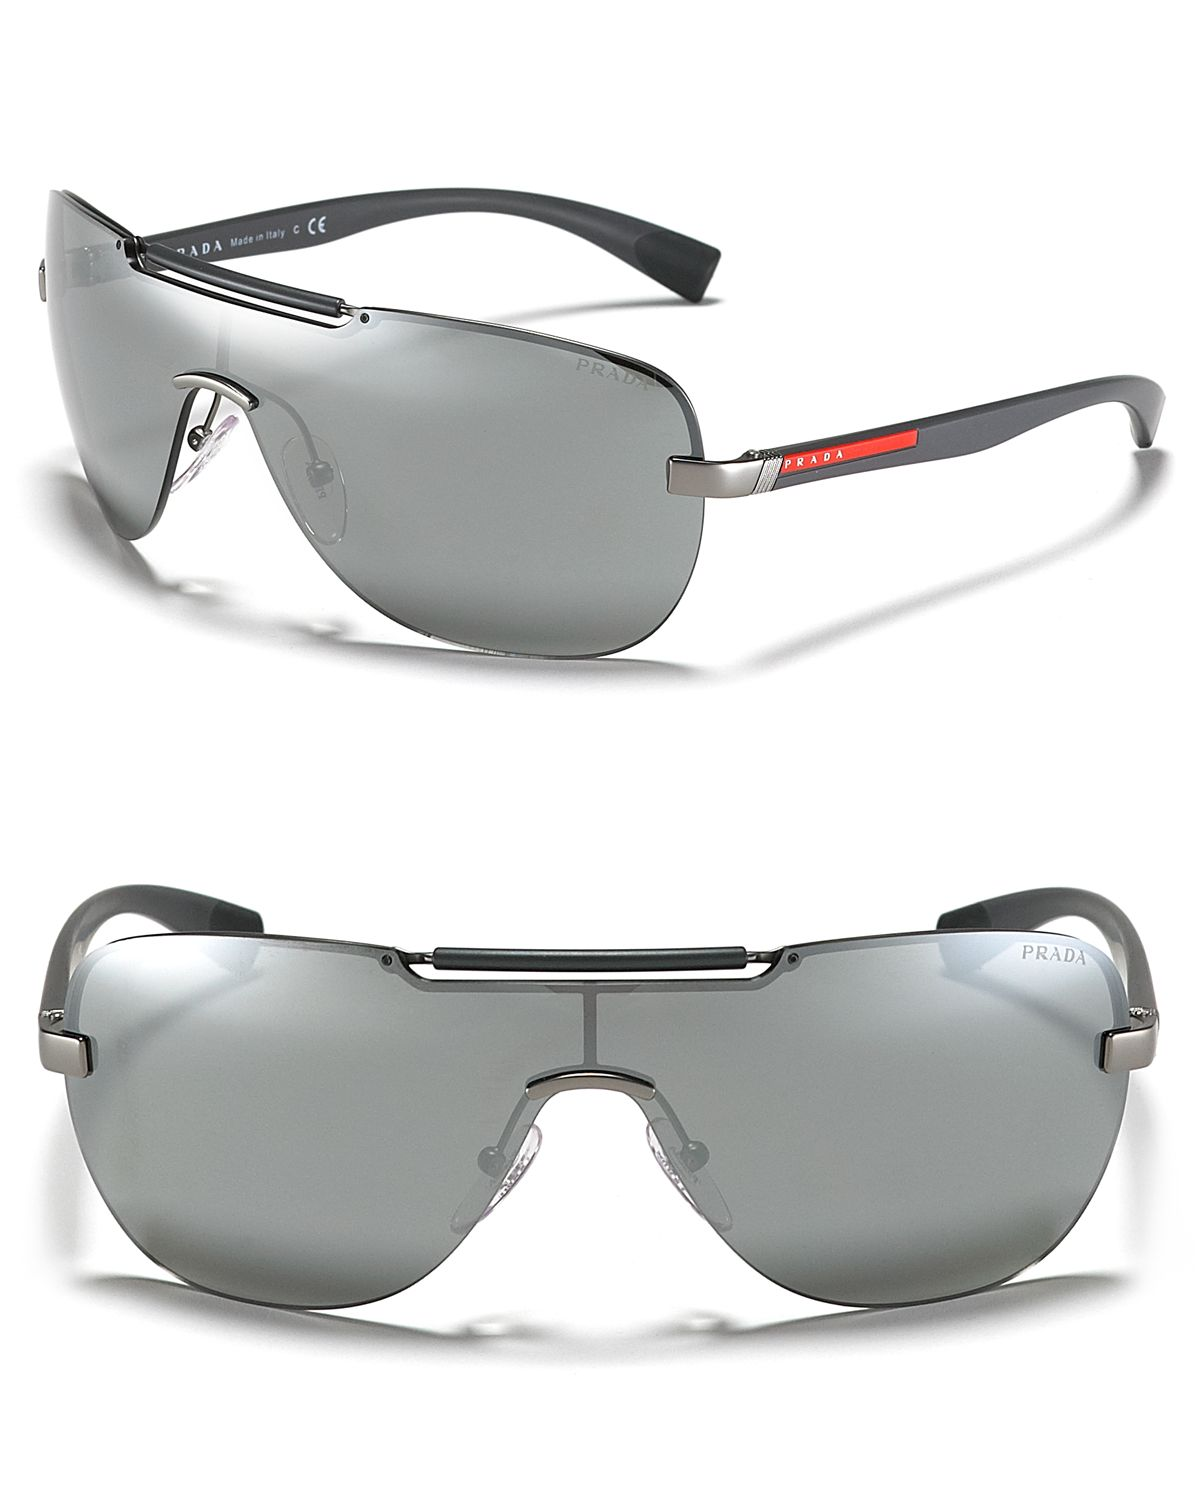 8c010dc850a16 Prada Linea Rossa Shield Thin Temple Sunglasses in Metallic - Lyst